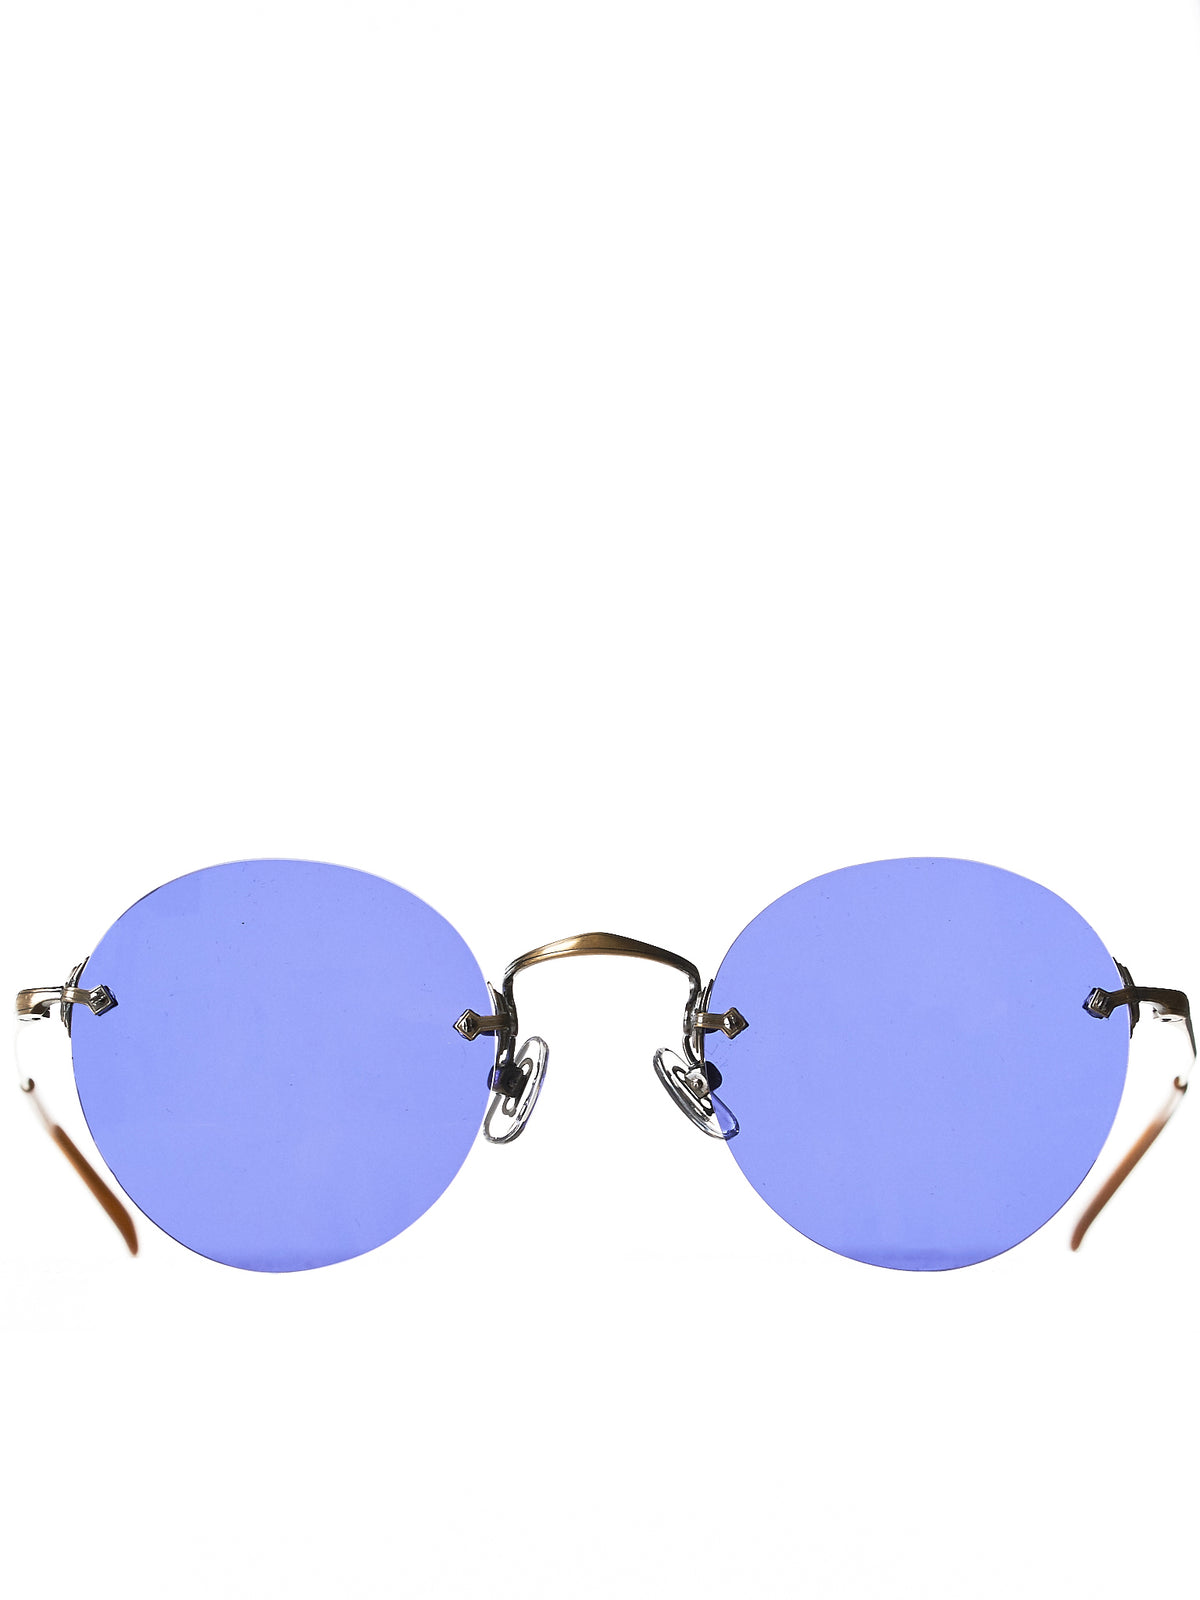 'ANAAKI' Titanium Sunglasses (ANAAKI-M-UPPER-SHAPE-BOSTON-AG)